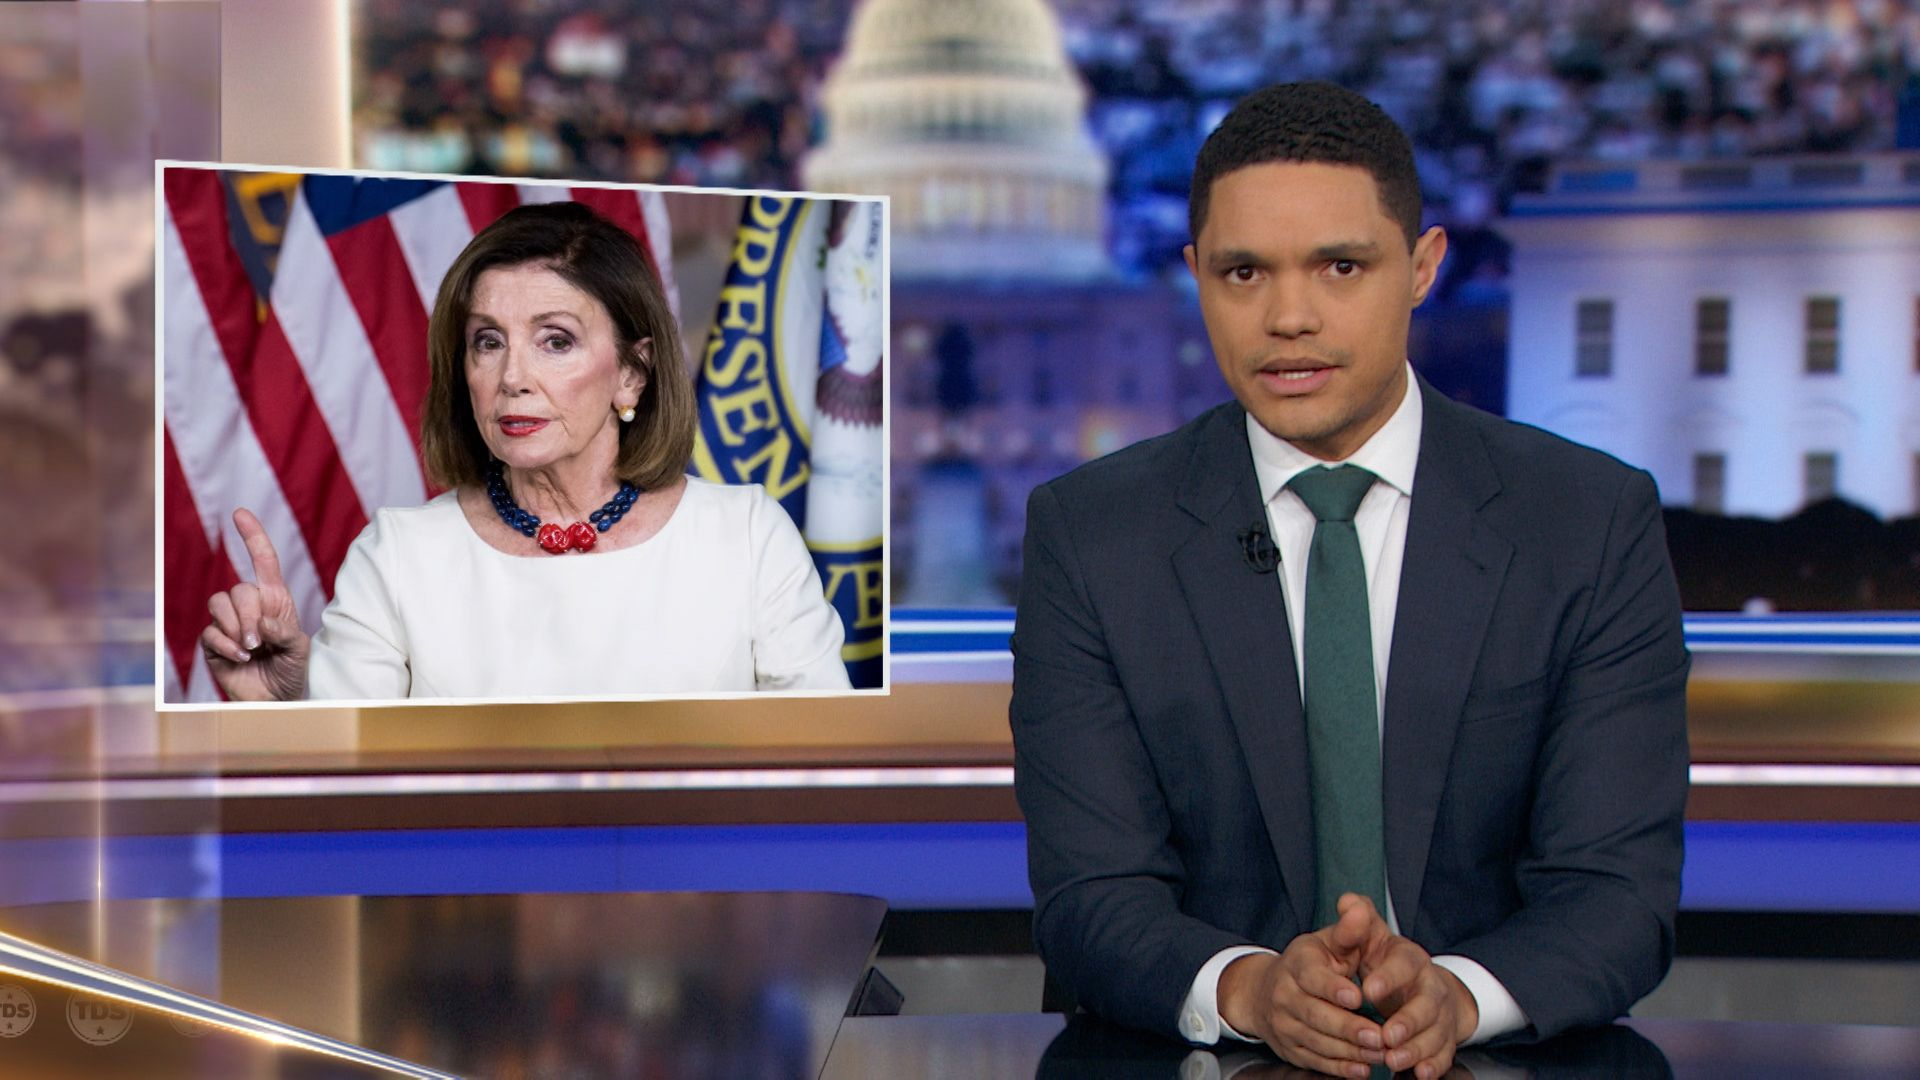 The Daily Show Episodes 2020.The Daily Show With Trevor Noah Extended December 5